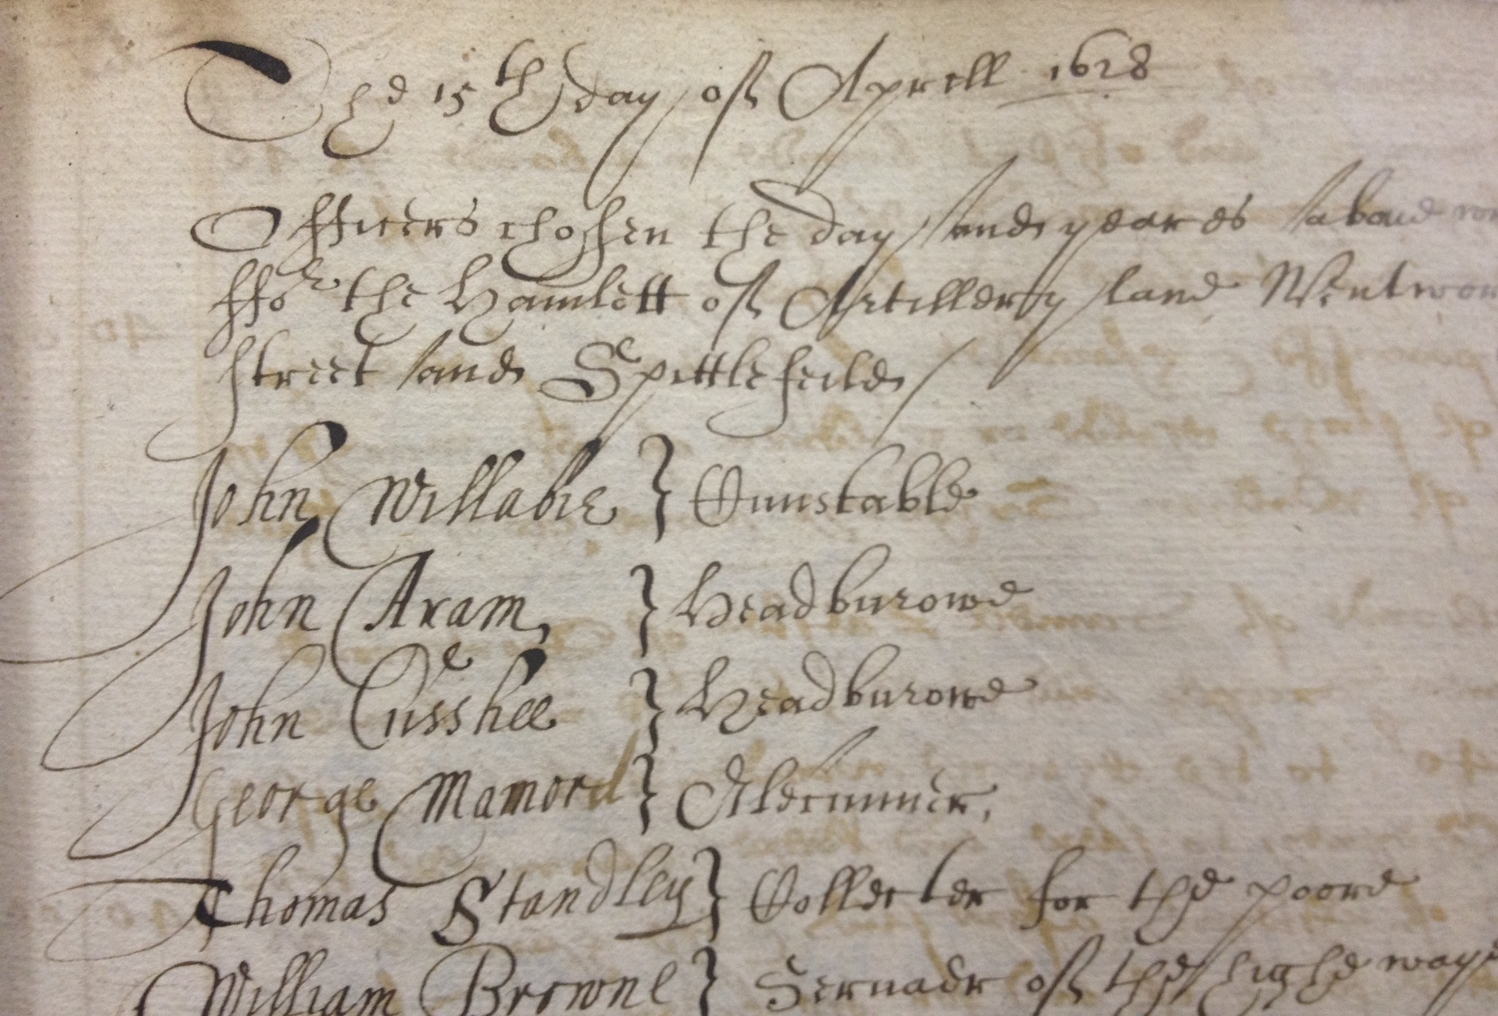 """Records of a town meeting held in the """"hamlett of Spittlefields"""" on the 15th day of August 1628. Note the appearance ofWilliam Browne who had taken the lease of """"three acres of pasture"""" in 1656 and subsequently laid outthe street today calledQuaker Street."""